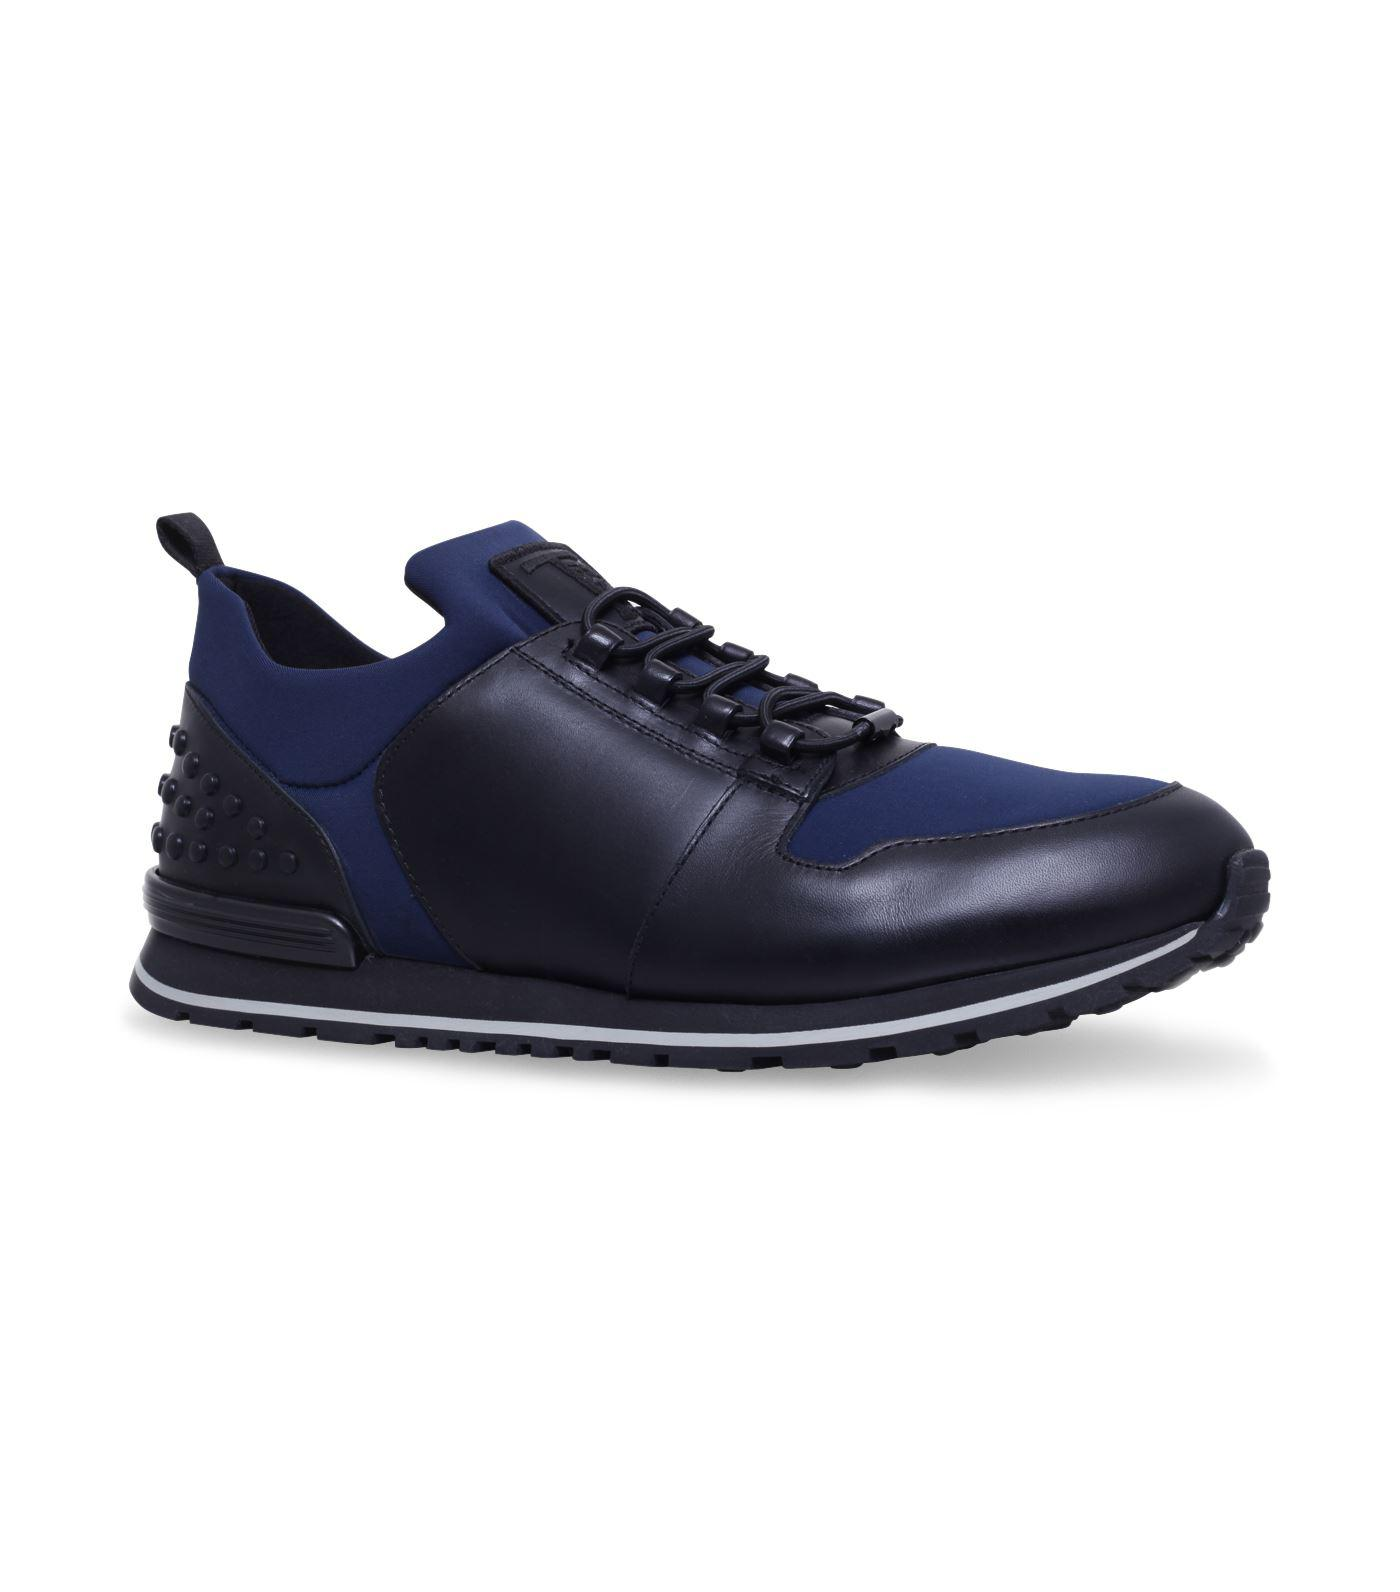 NO_CODE Sneakers in Leather and Scuba-Effect Fabric Tod's GVvDYXg